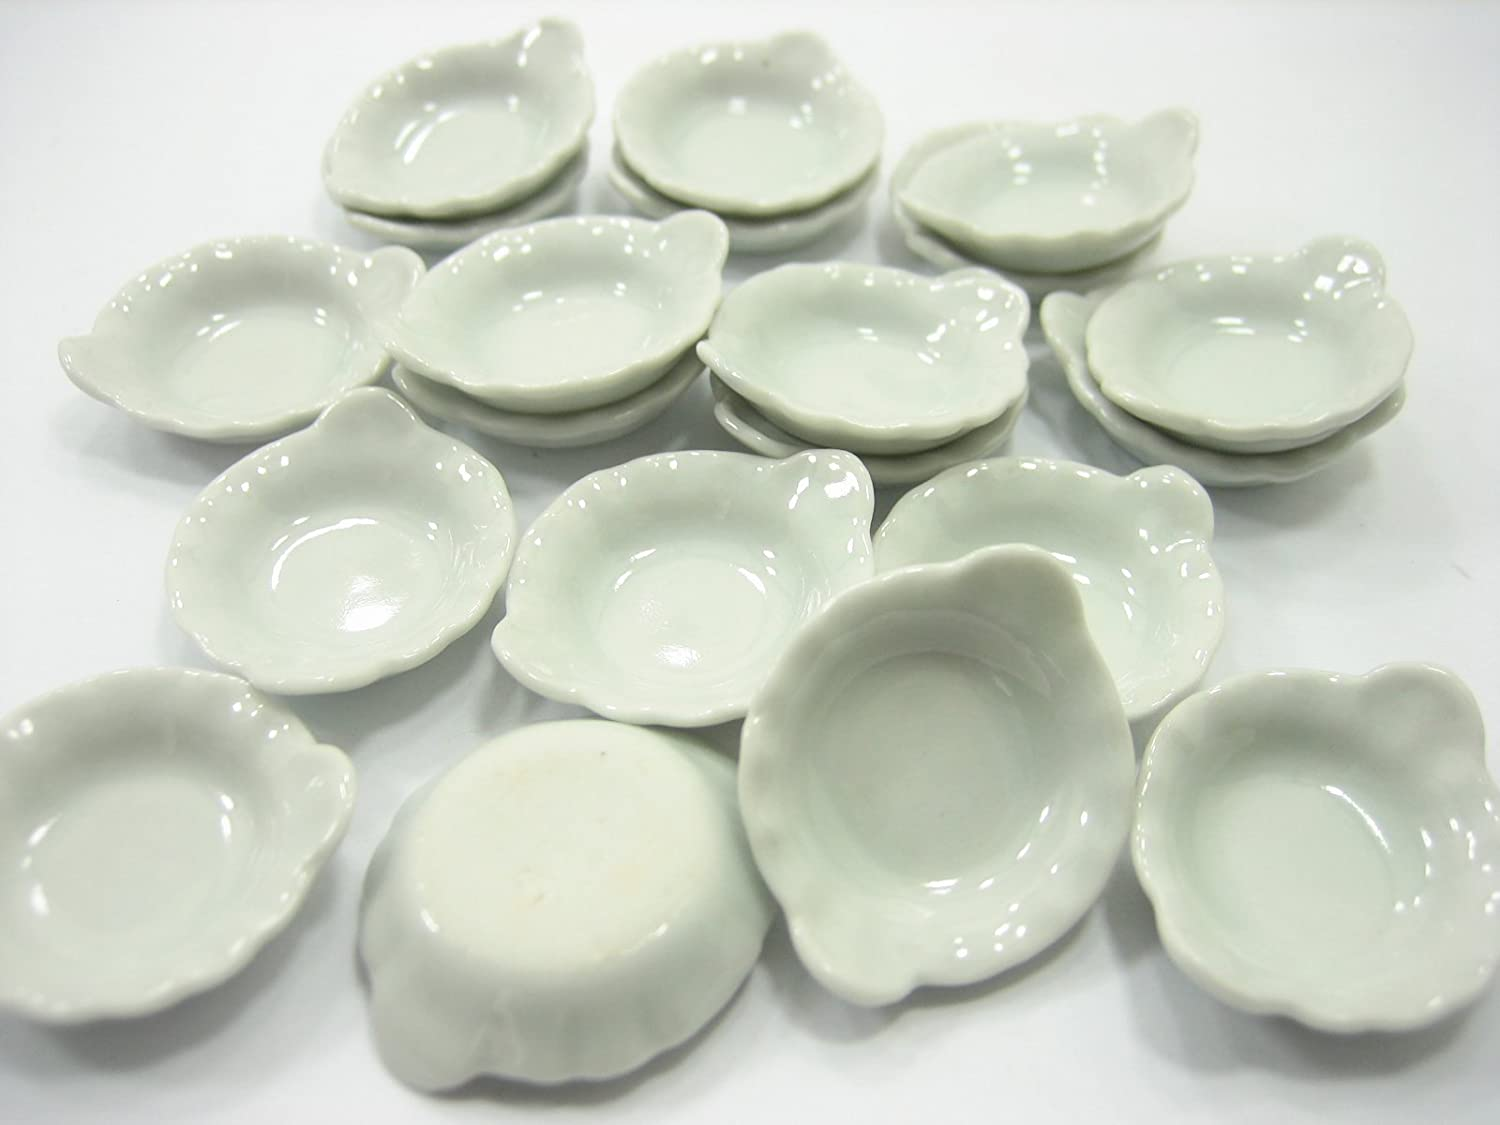 20x25 mm White Soup Bowl Dollhouse Miniatures Ceramic Food Supply 10075